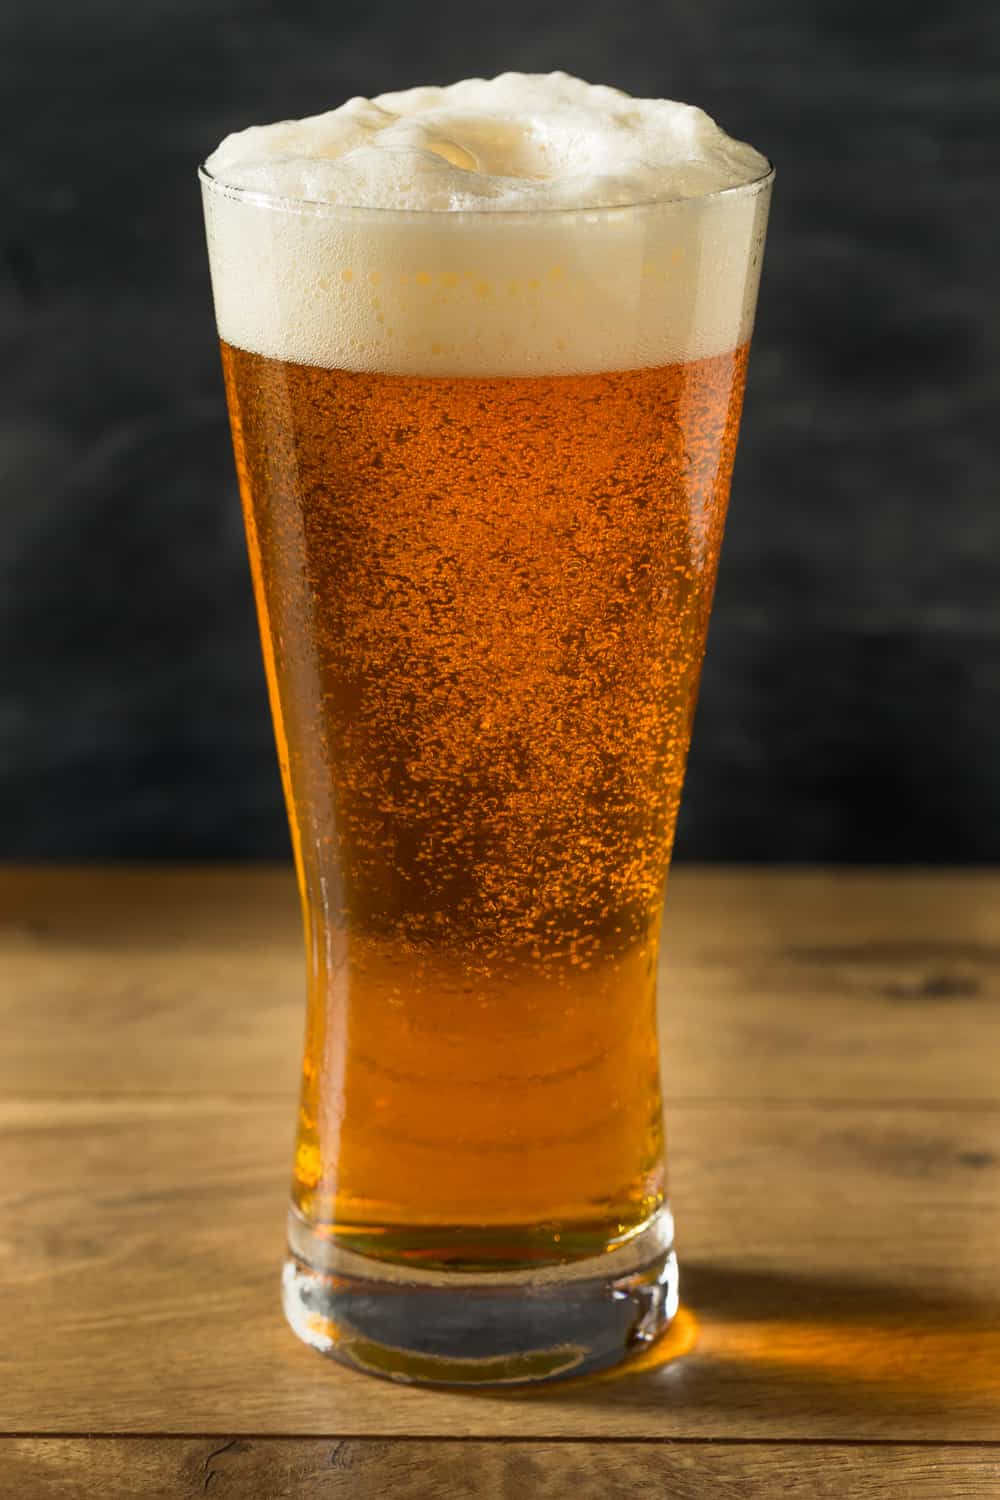 Boozy Golden Beer Ale in a Tall Glass with Foam